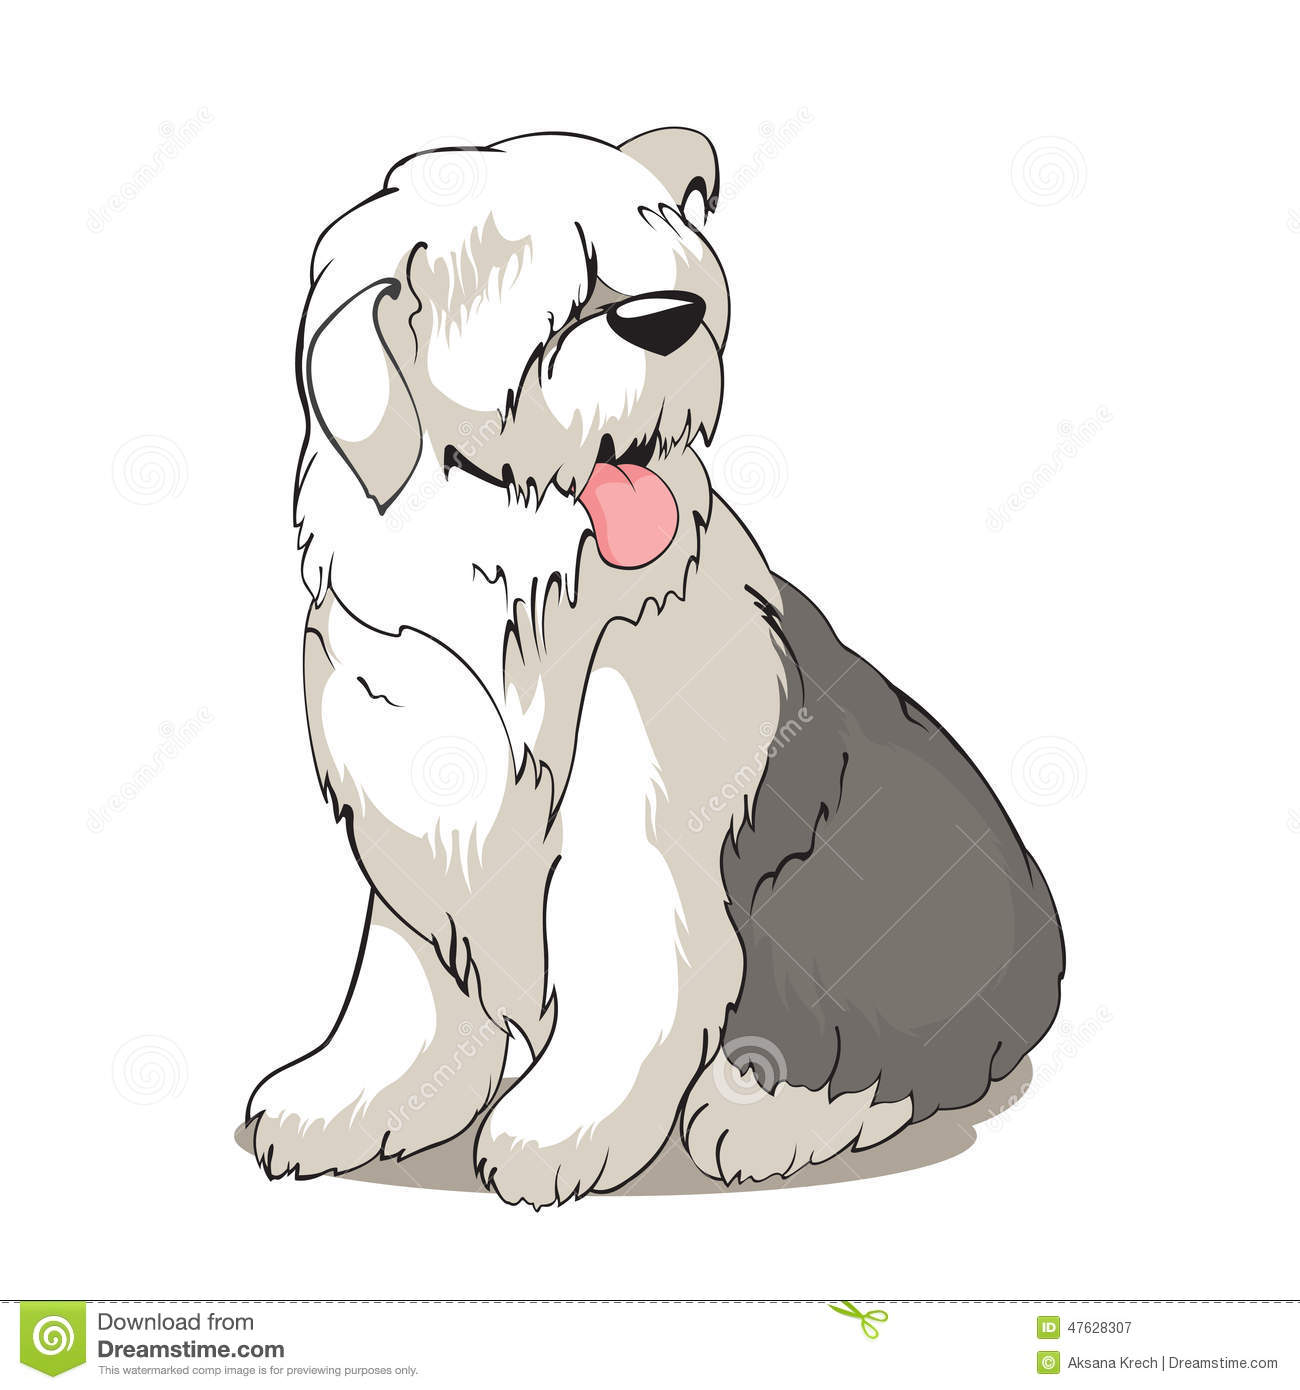 Bobtail DOG Stock Vector - Image: 47628307 Veterinary Tools Clip Art